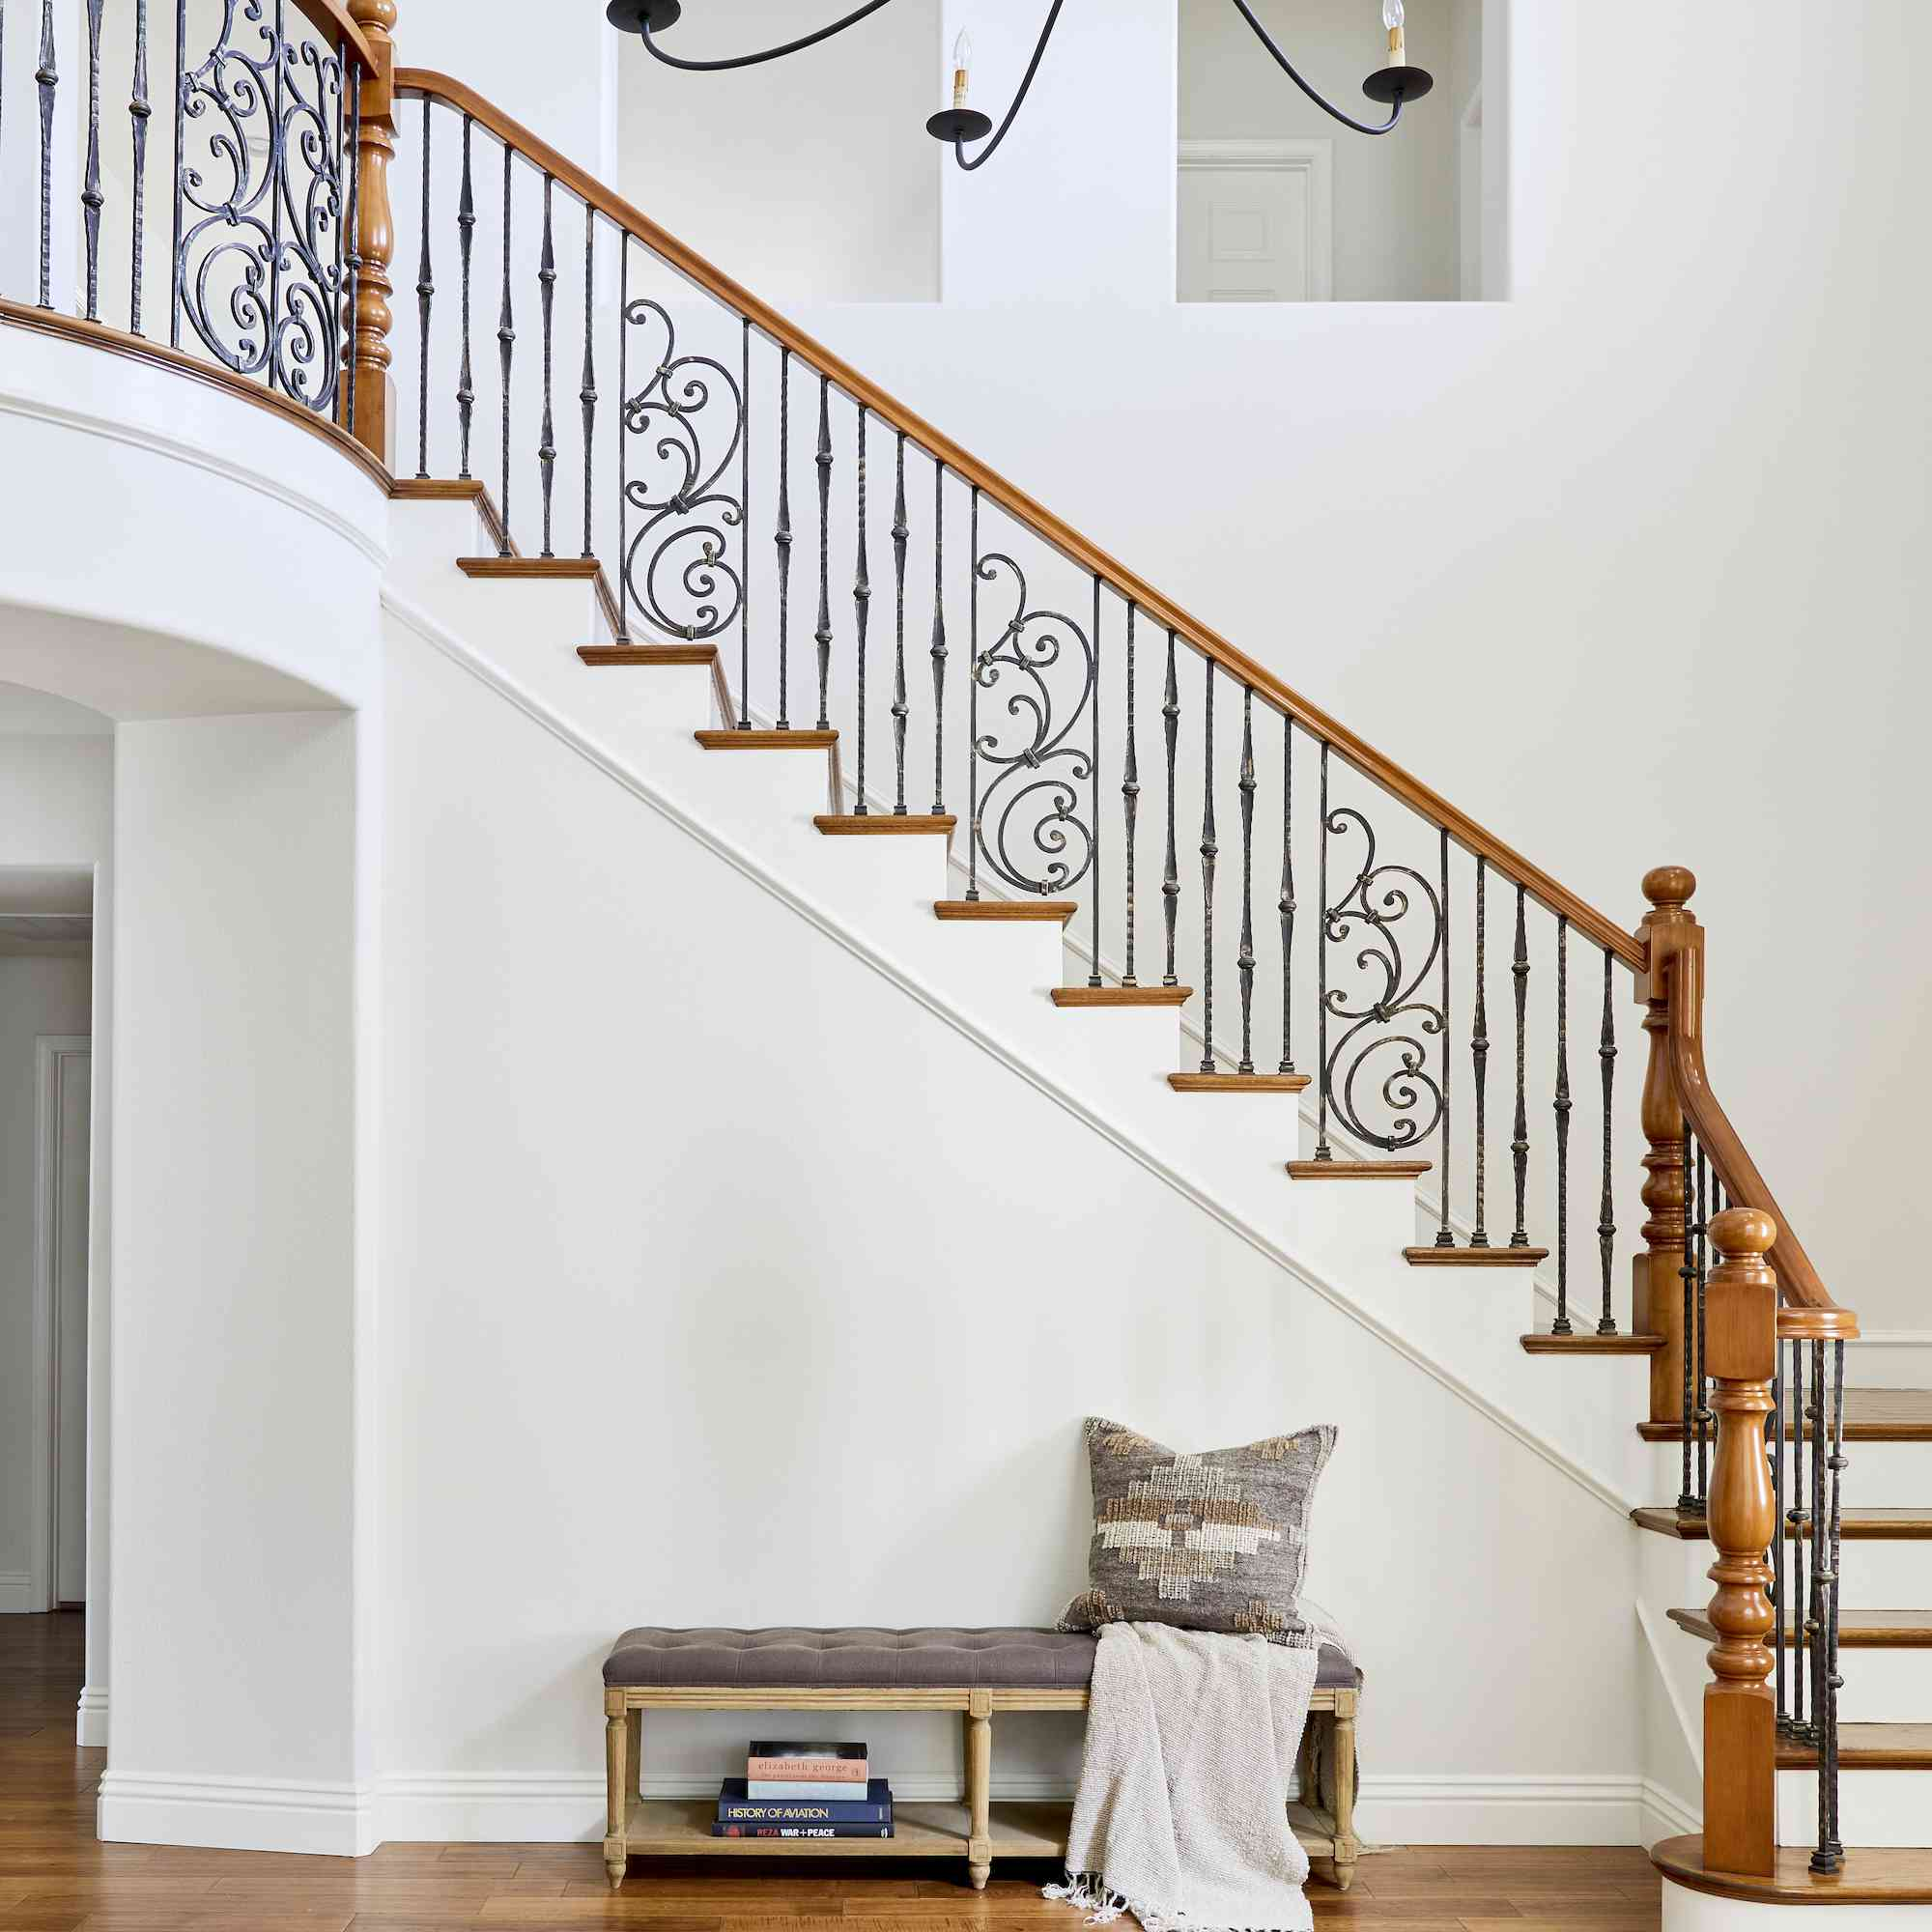 Grand staircase and small entryway bench.